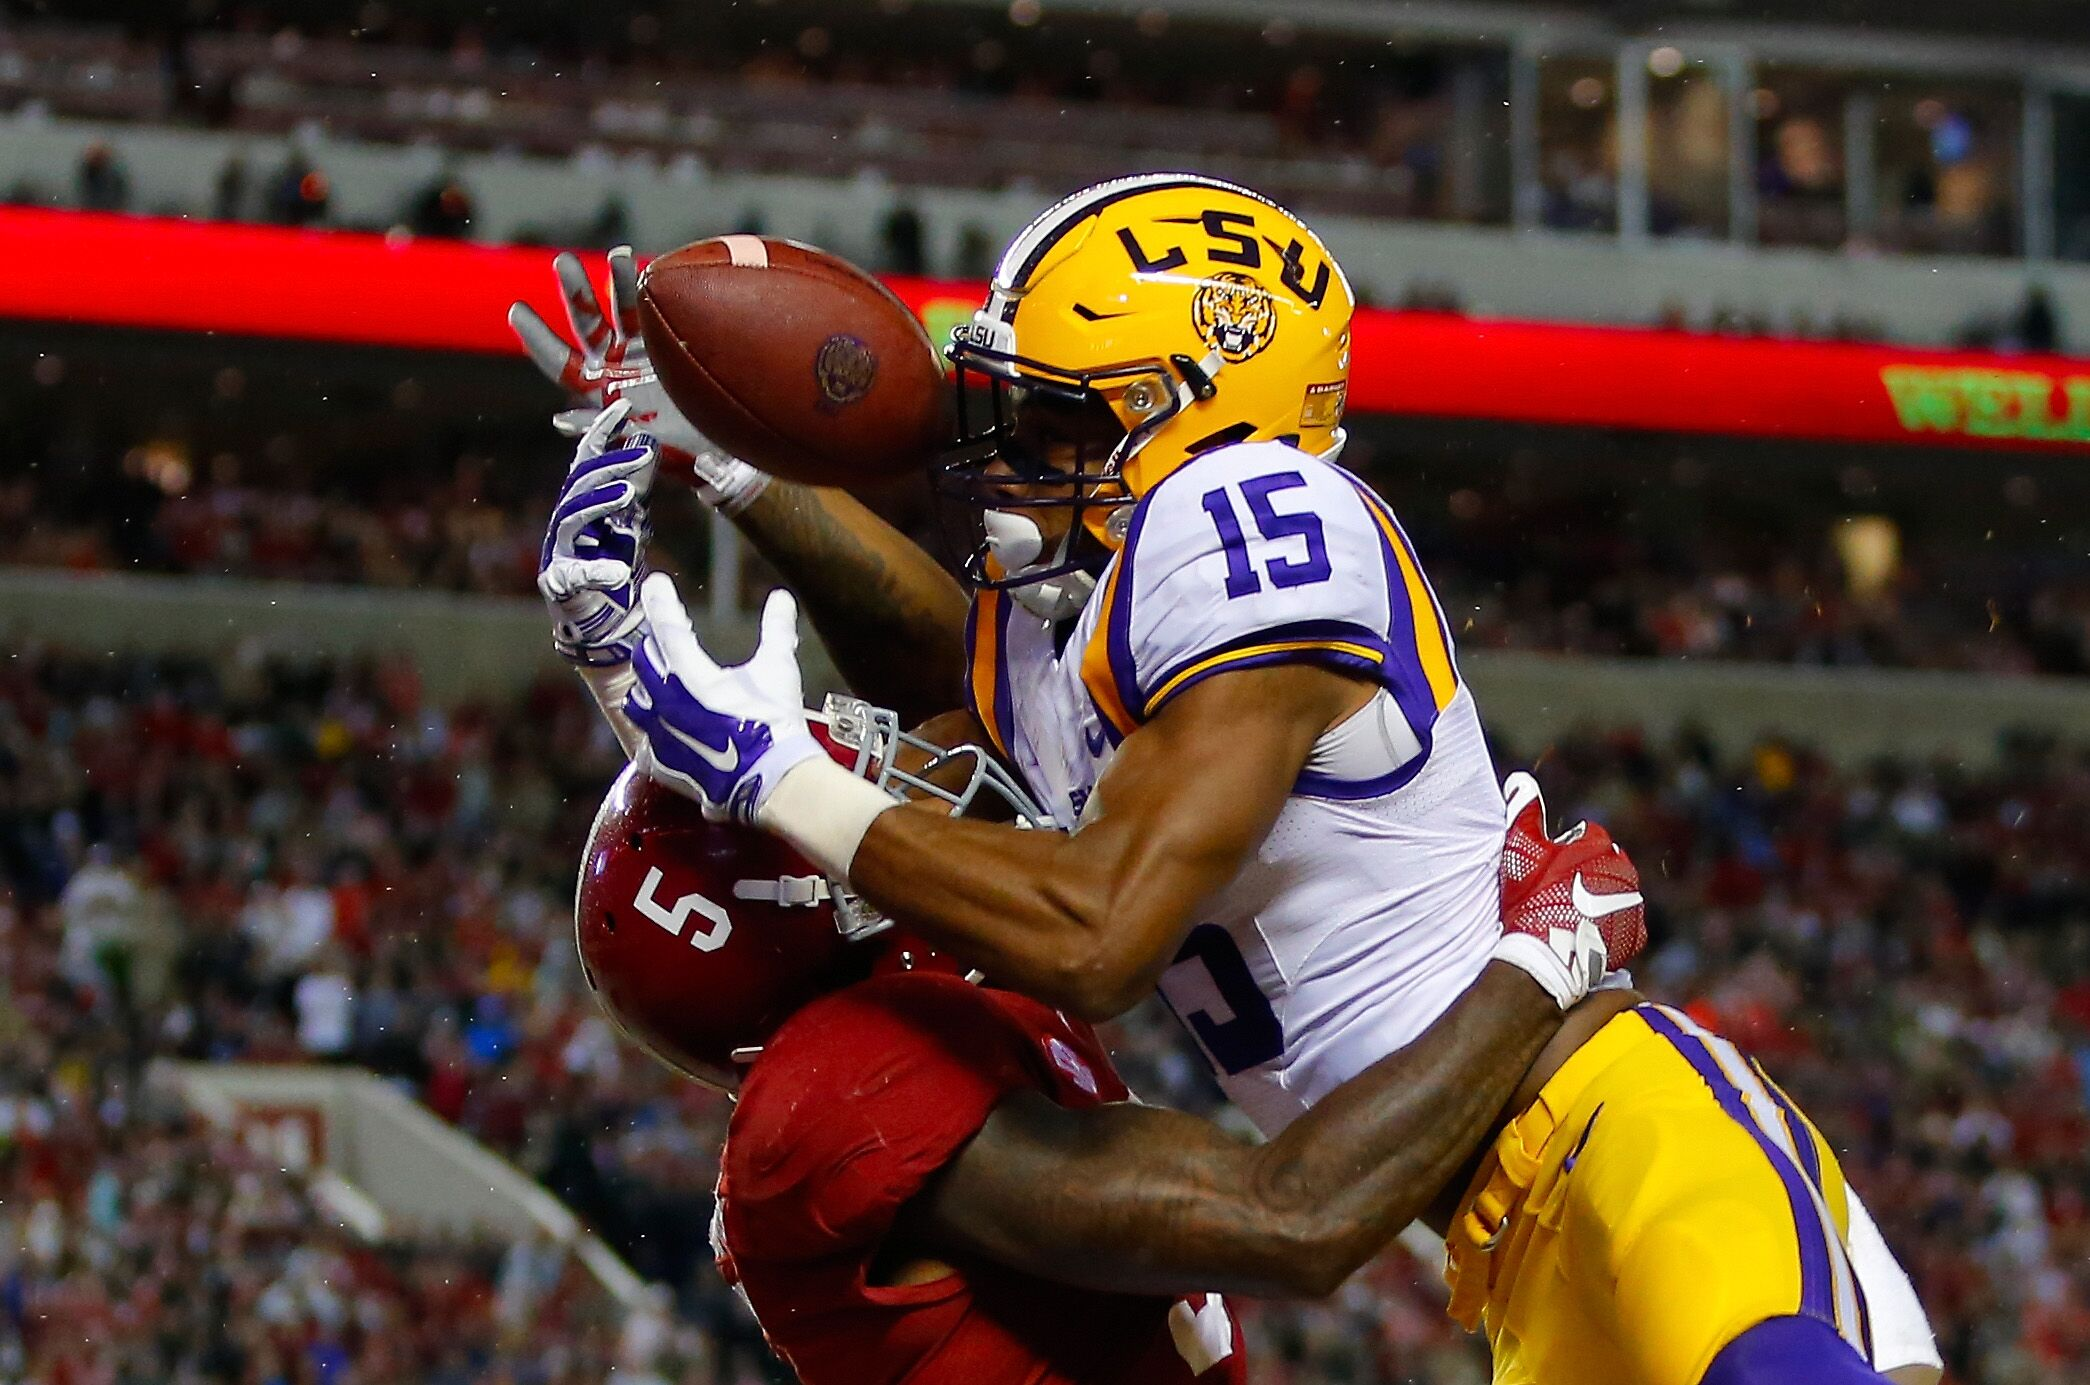 Get the latest LSU Tigers news scores stats standings rumors and more from ESPN